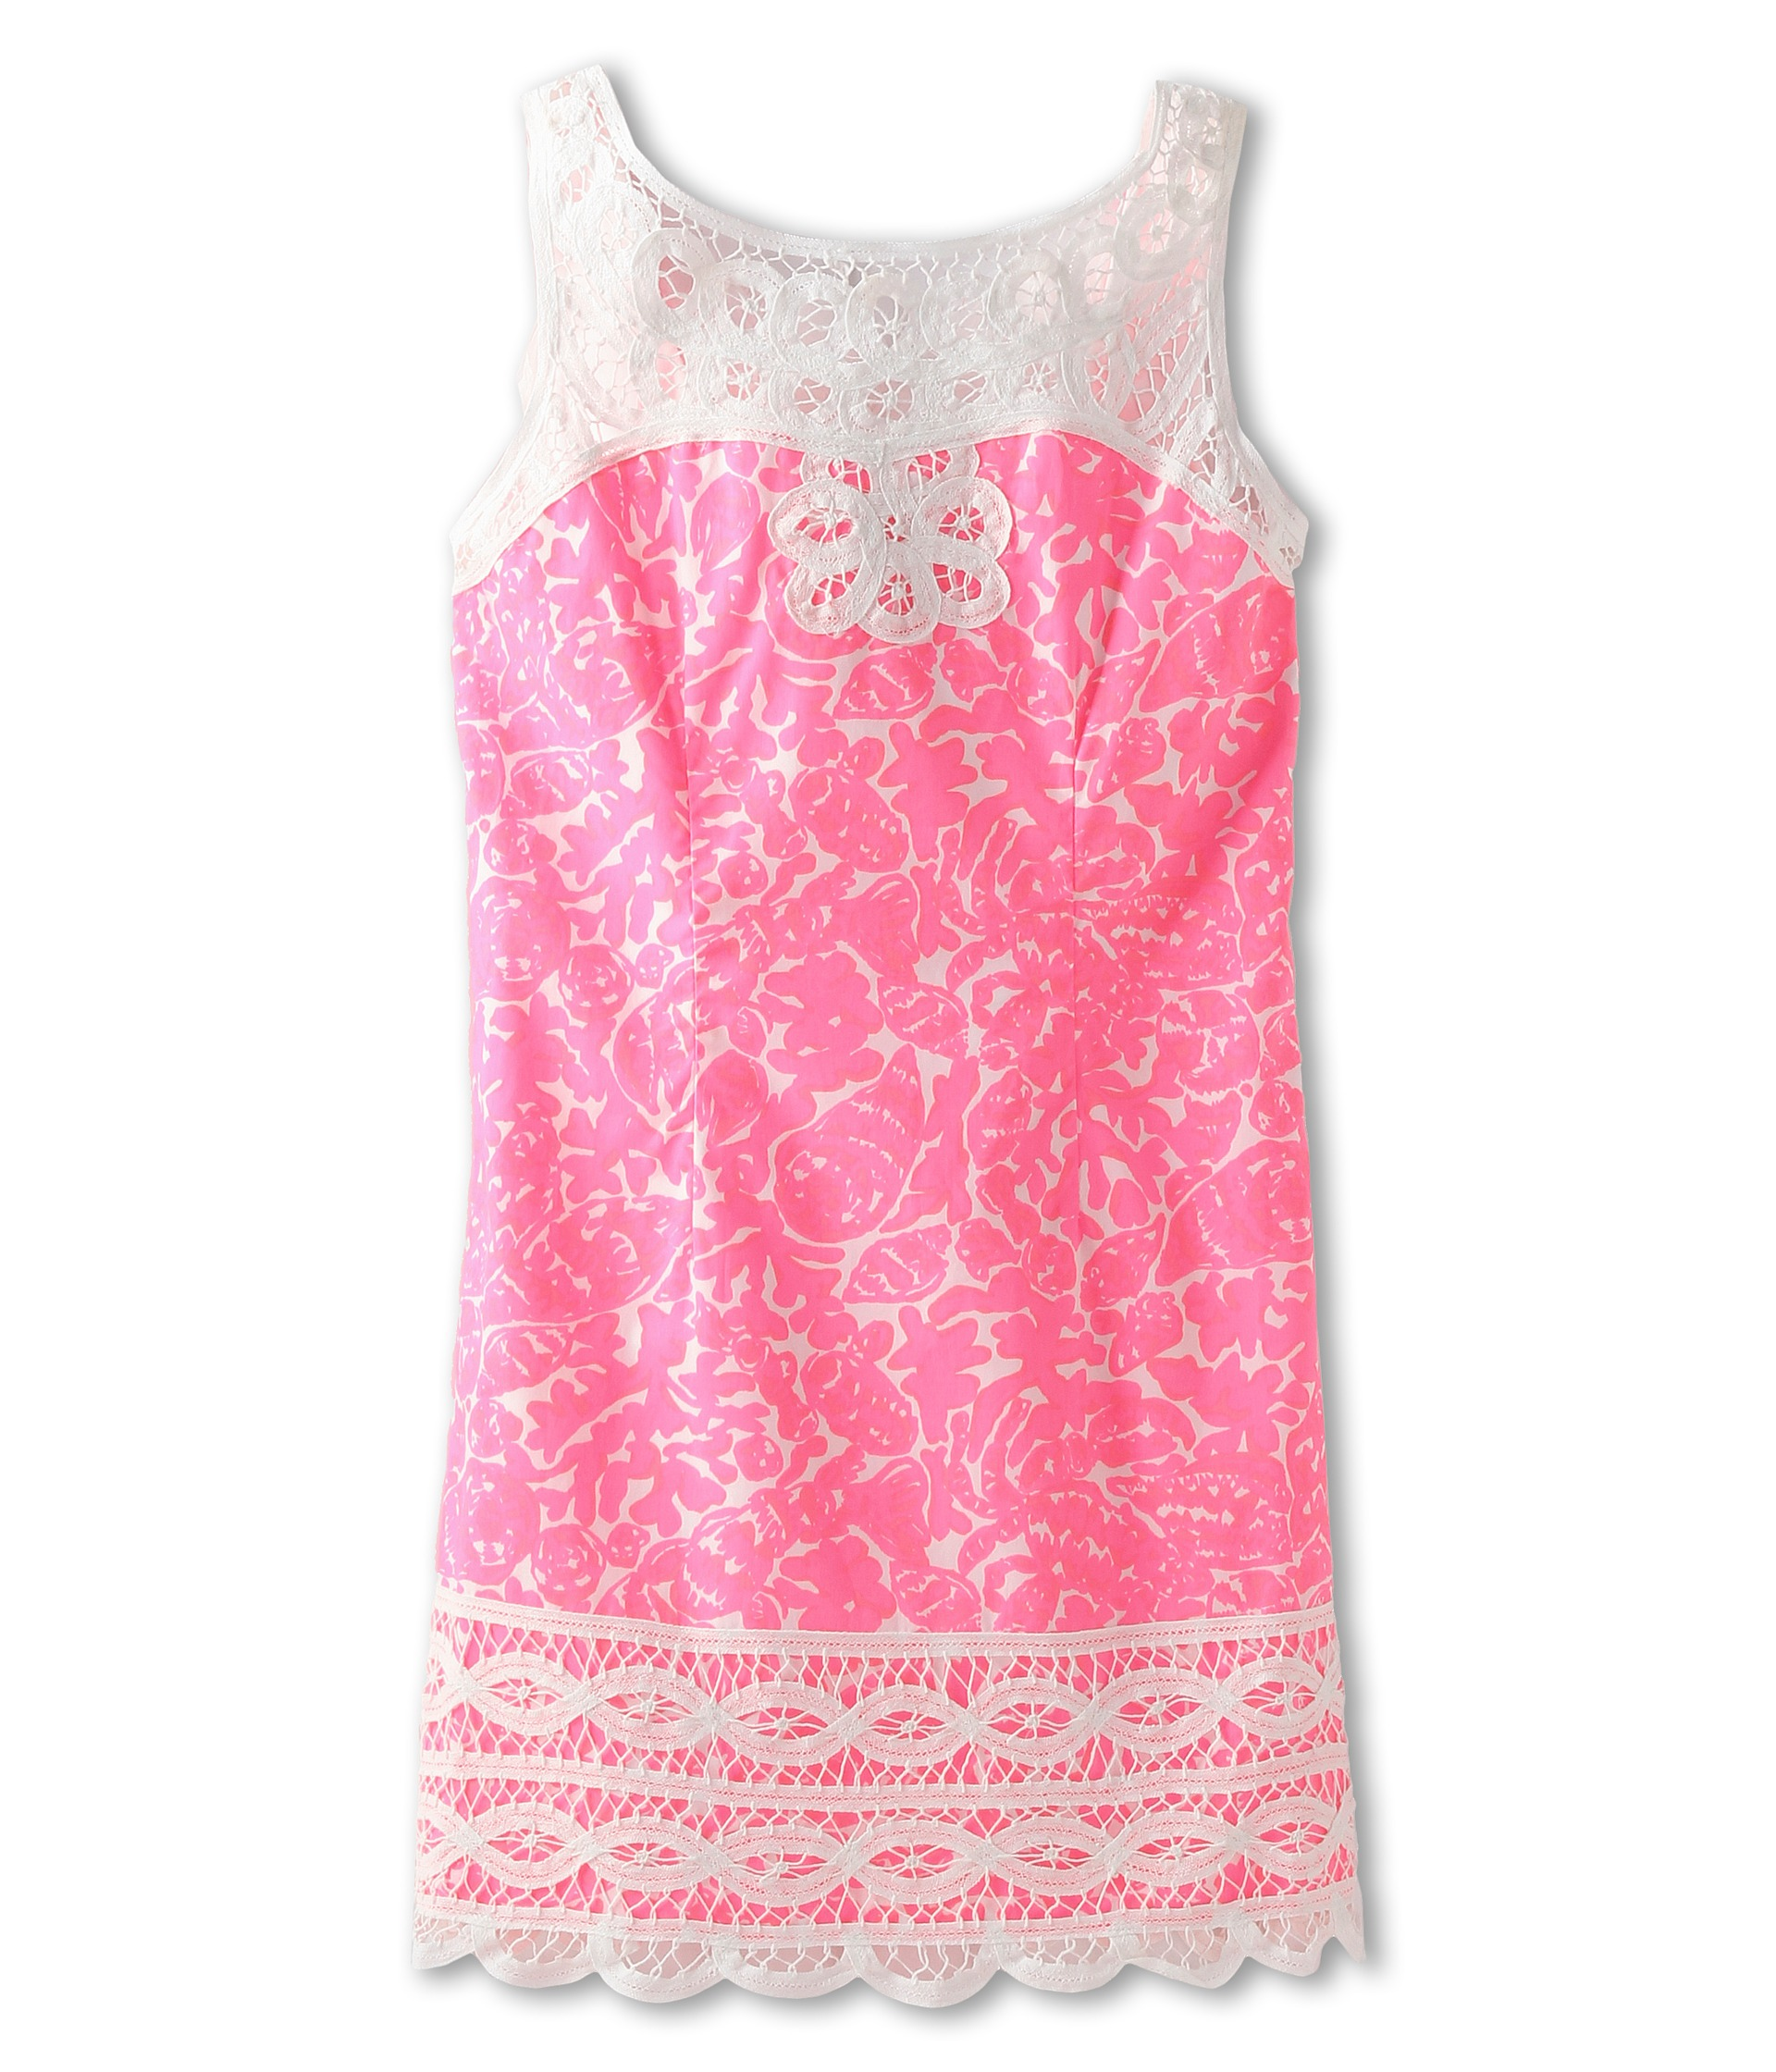 Lilly Pulitzer Dresses On Sale Clearance Lilly Pulitzer Kids Dresses